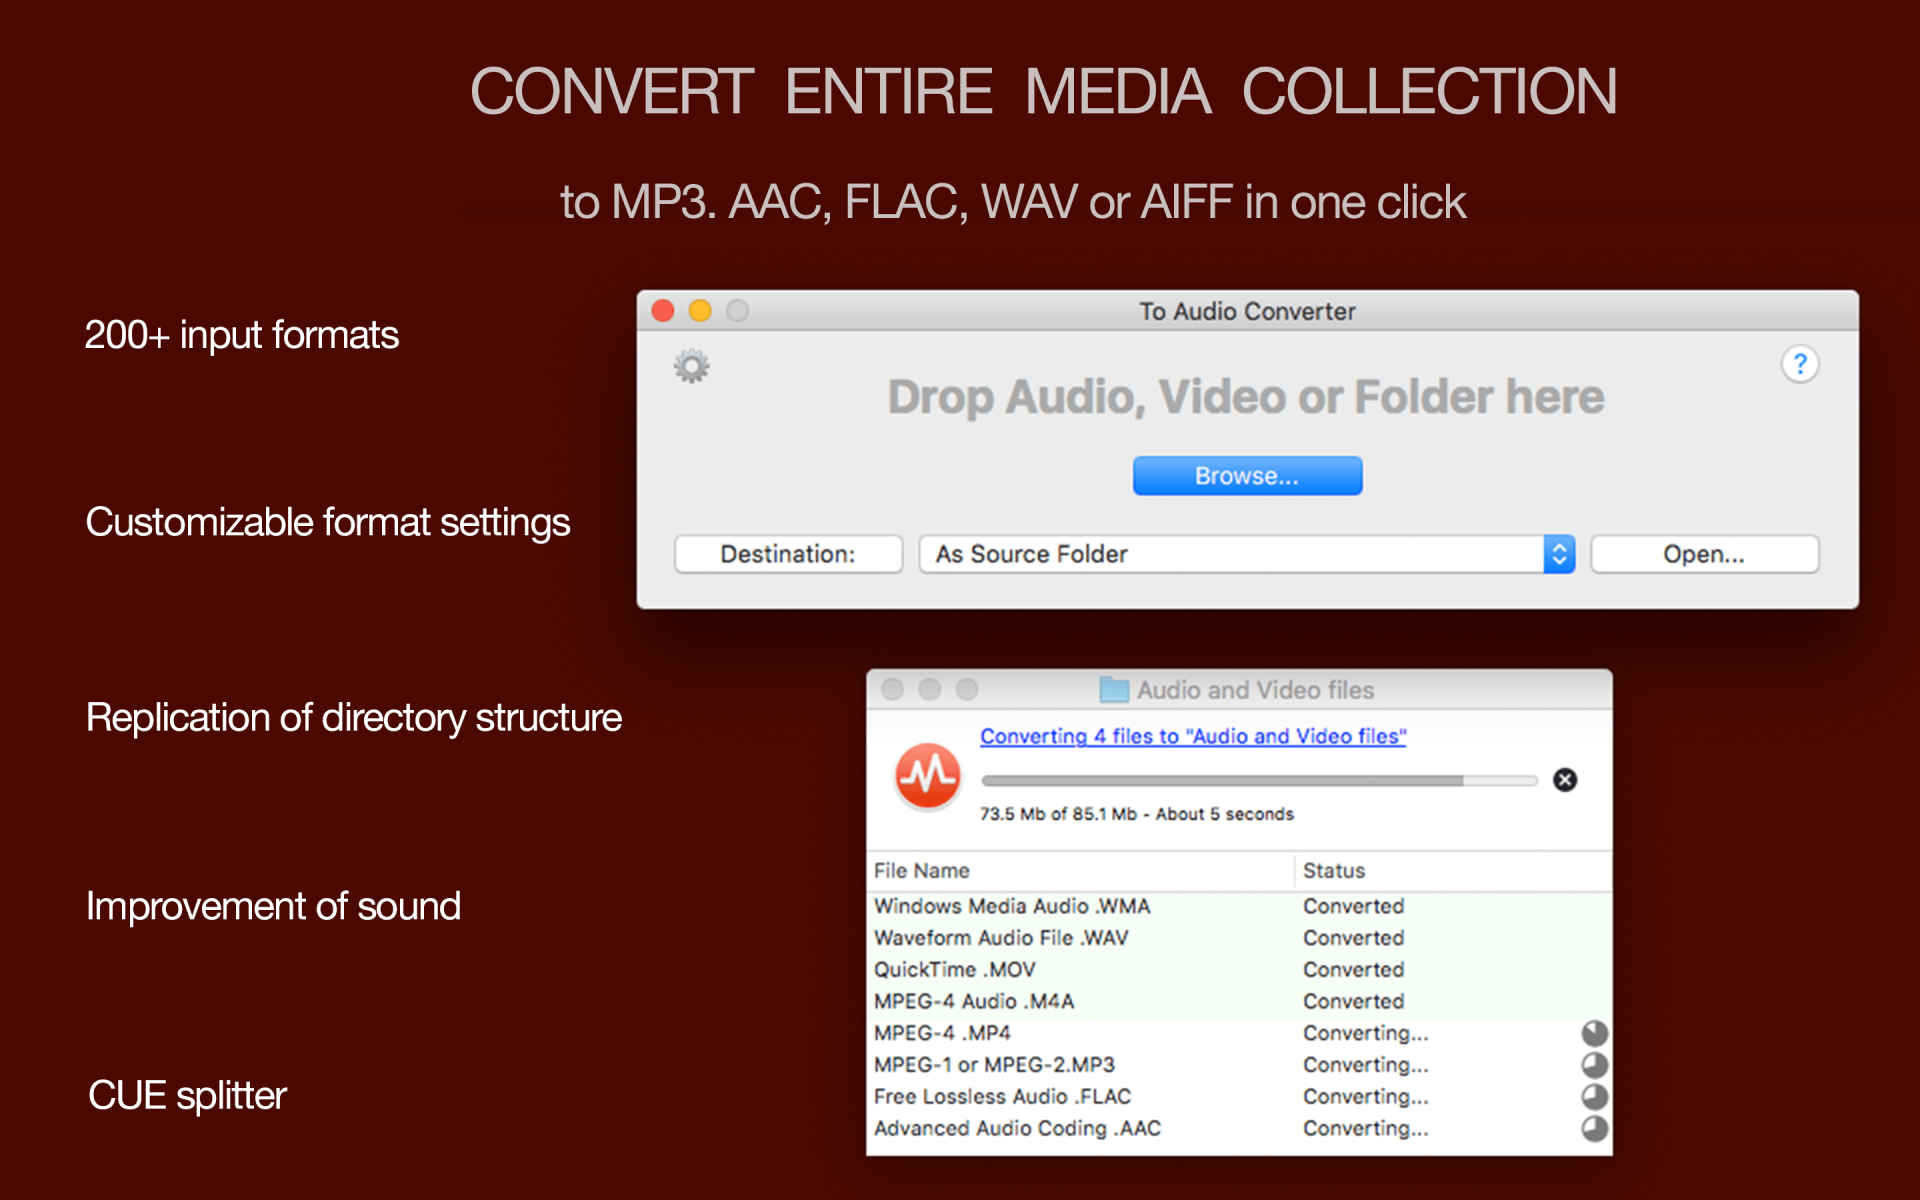 to-audio-converter_2_325006.png